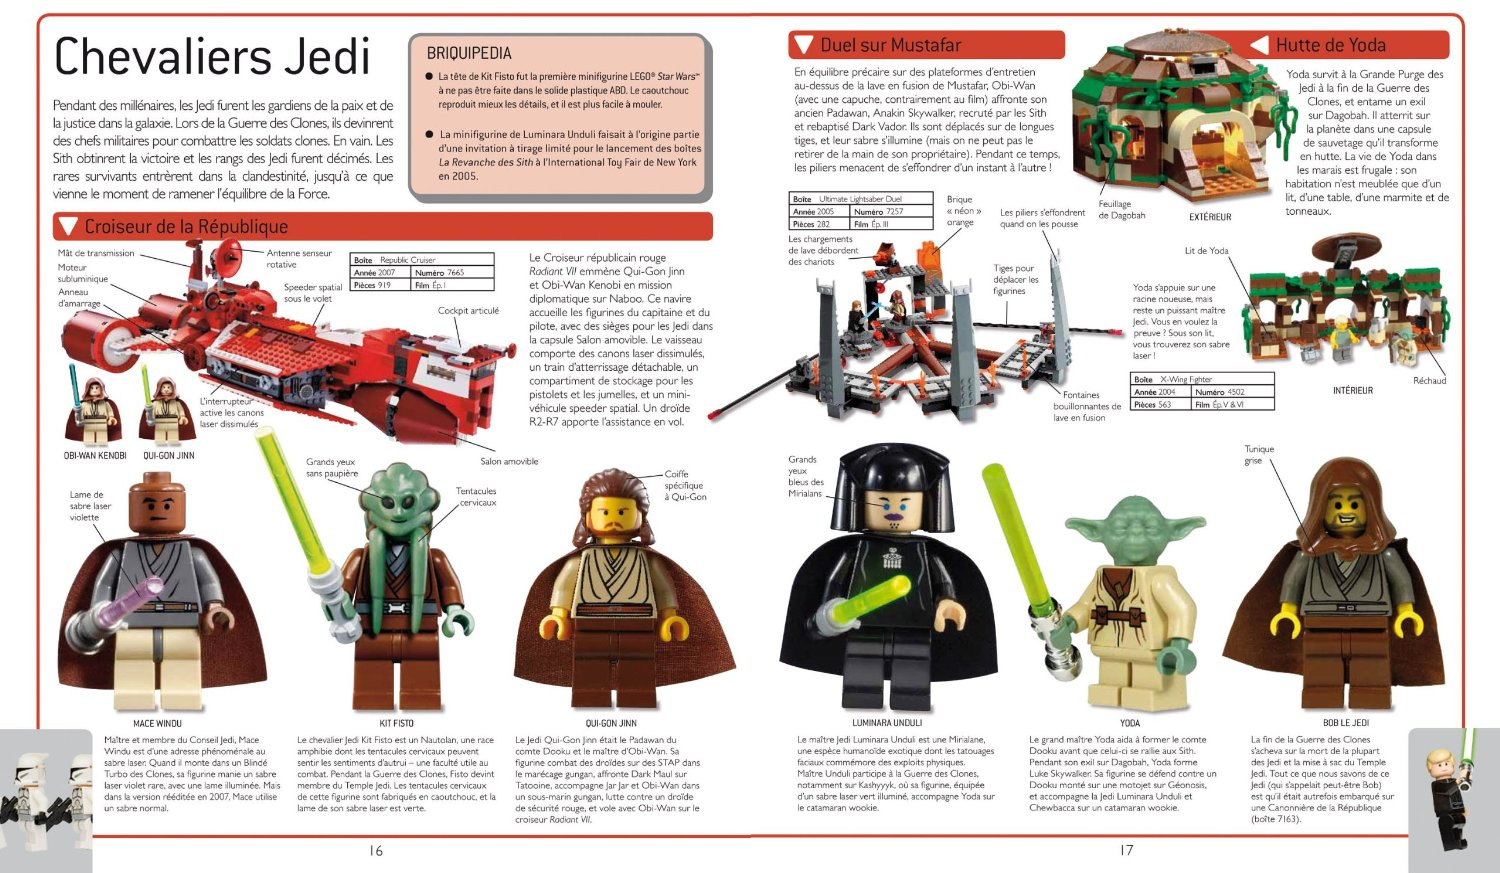 Image star wars l 39 encyclop die illustr e wiki - Personnage star wars lego ...